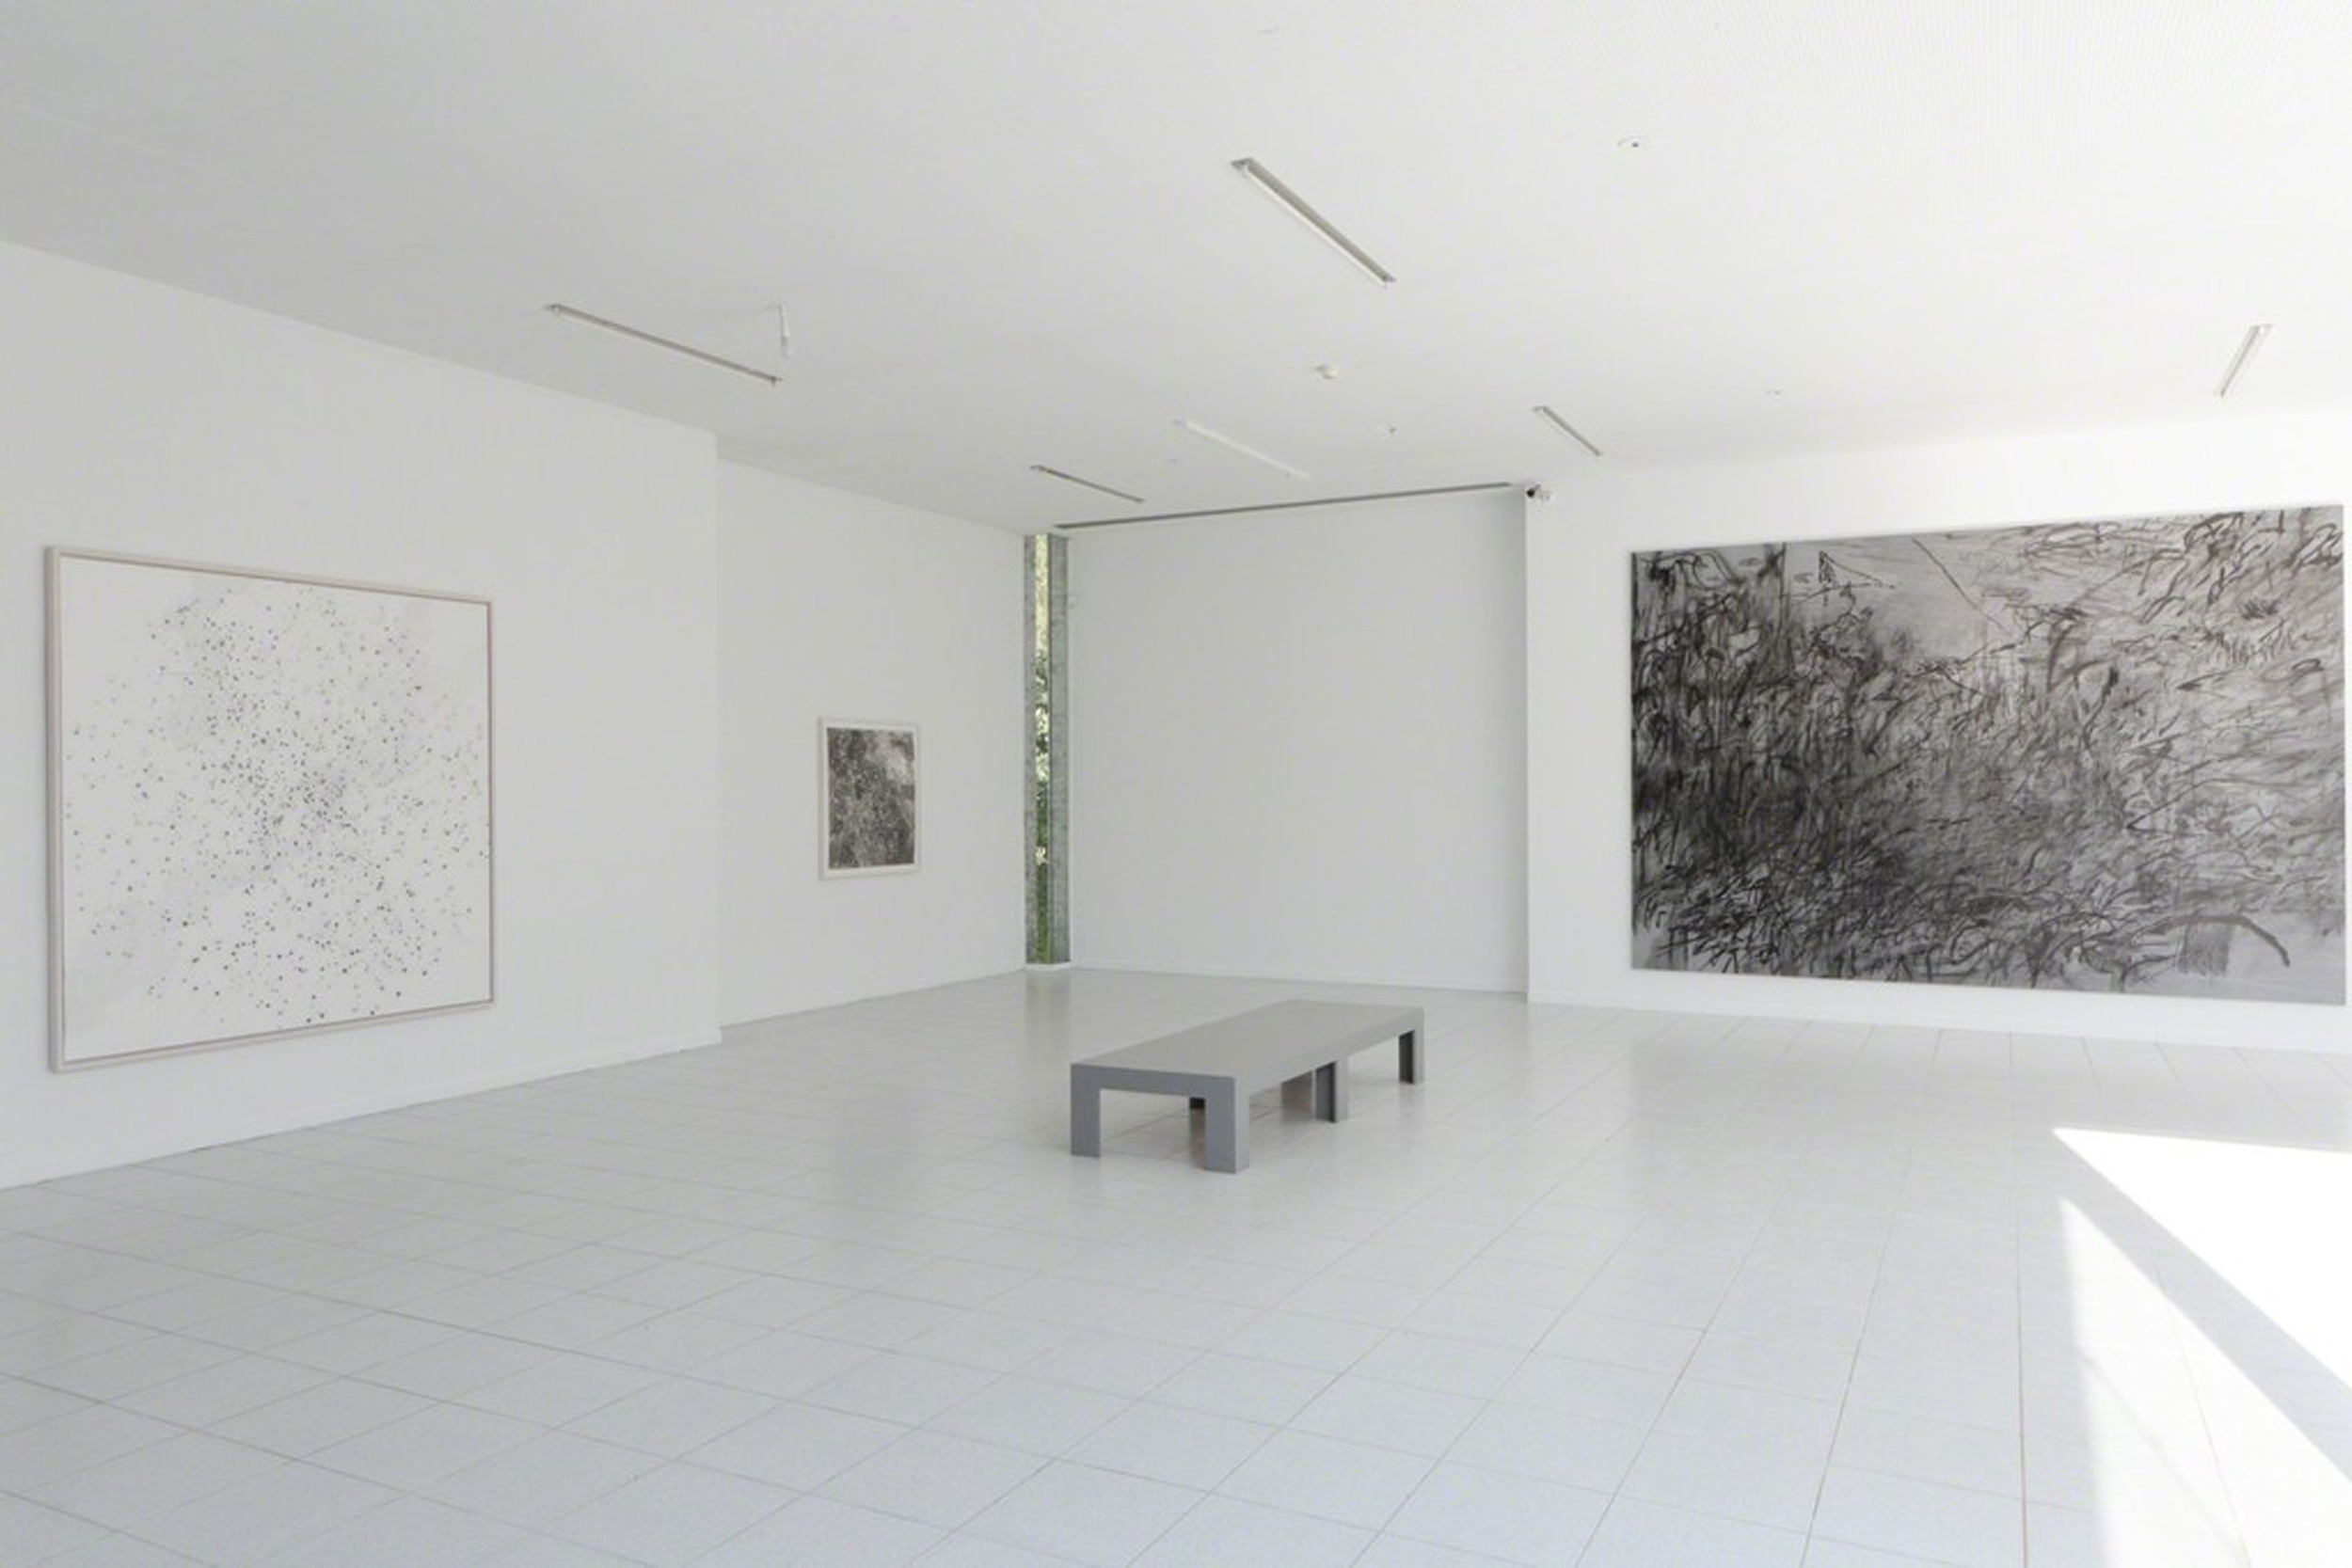 Artworks in the photo, from left to right:  Jessica Rankin, The Great Other, 2016, courtesy of the artist and carlier | gebauer, Berlin Jessica Rankin, Let the Awful Shade Stop Rising, 2014, courtesy of the artist and Salon 94, New York Julie Mehretu, Invisible Sun (algorithm 7, spell form), 2015, courtesy of the artist and Marian Goodman Gallery, New York